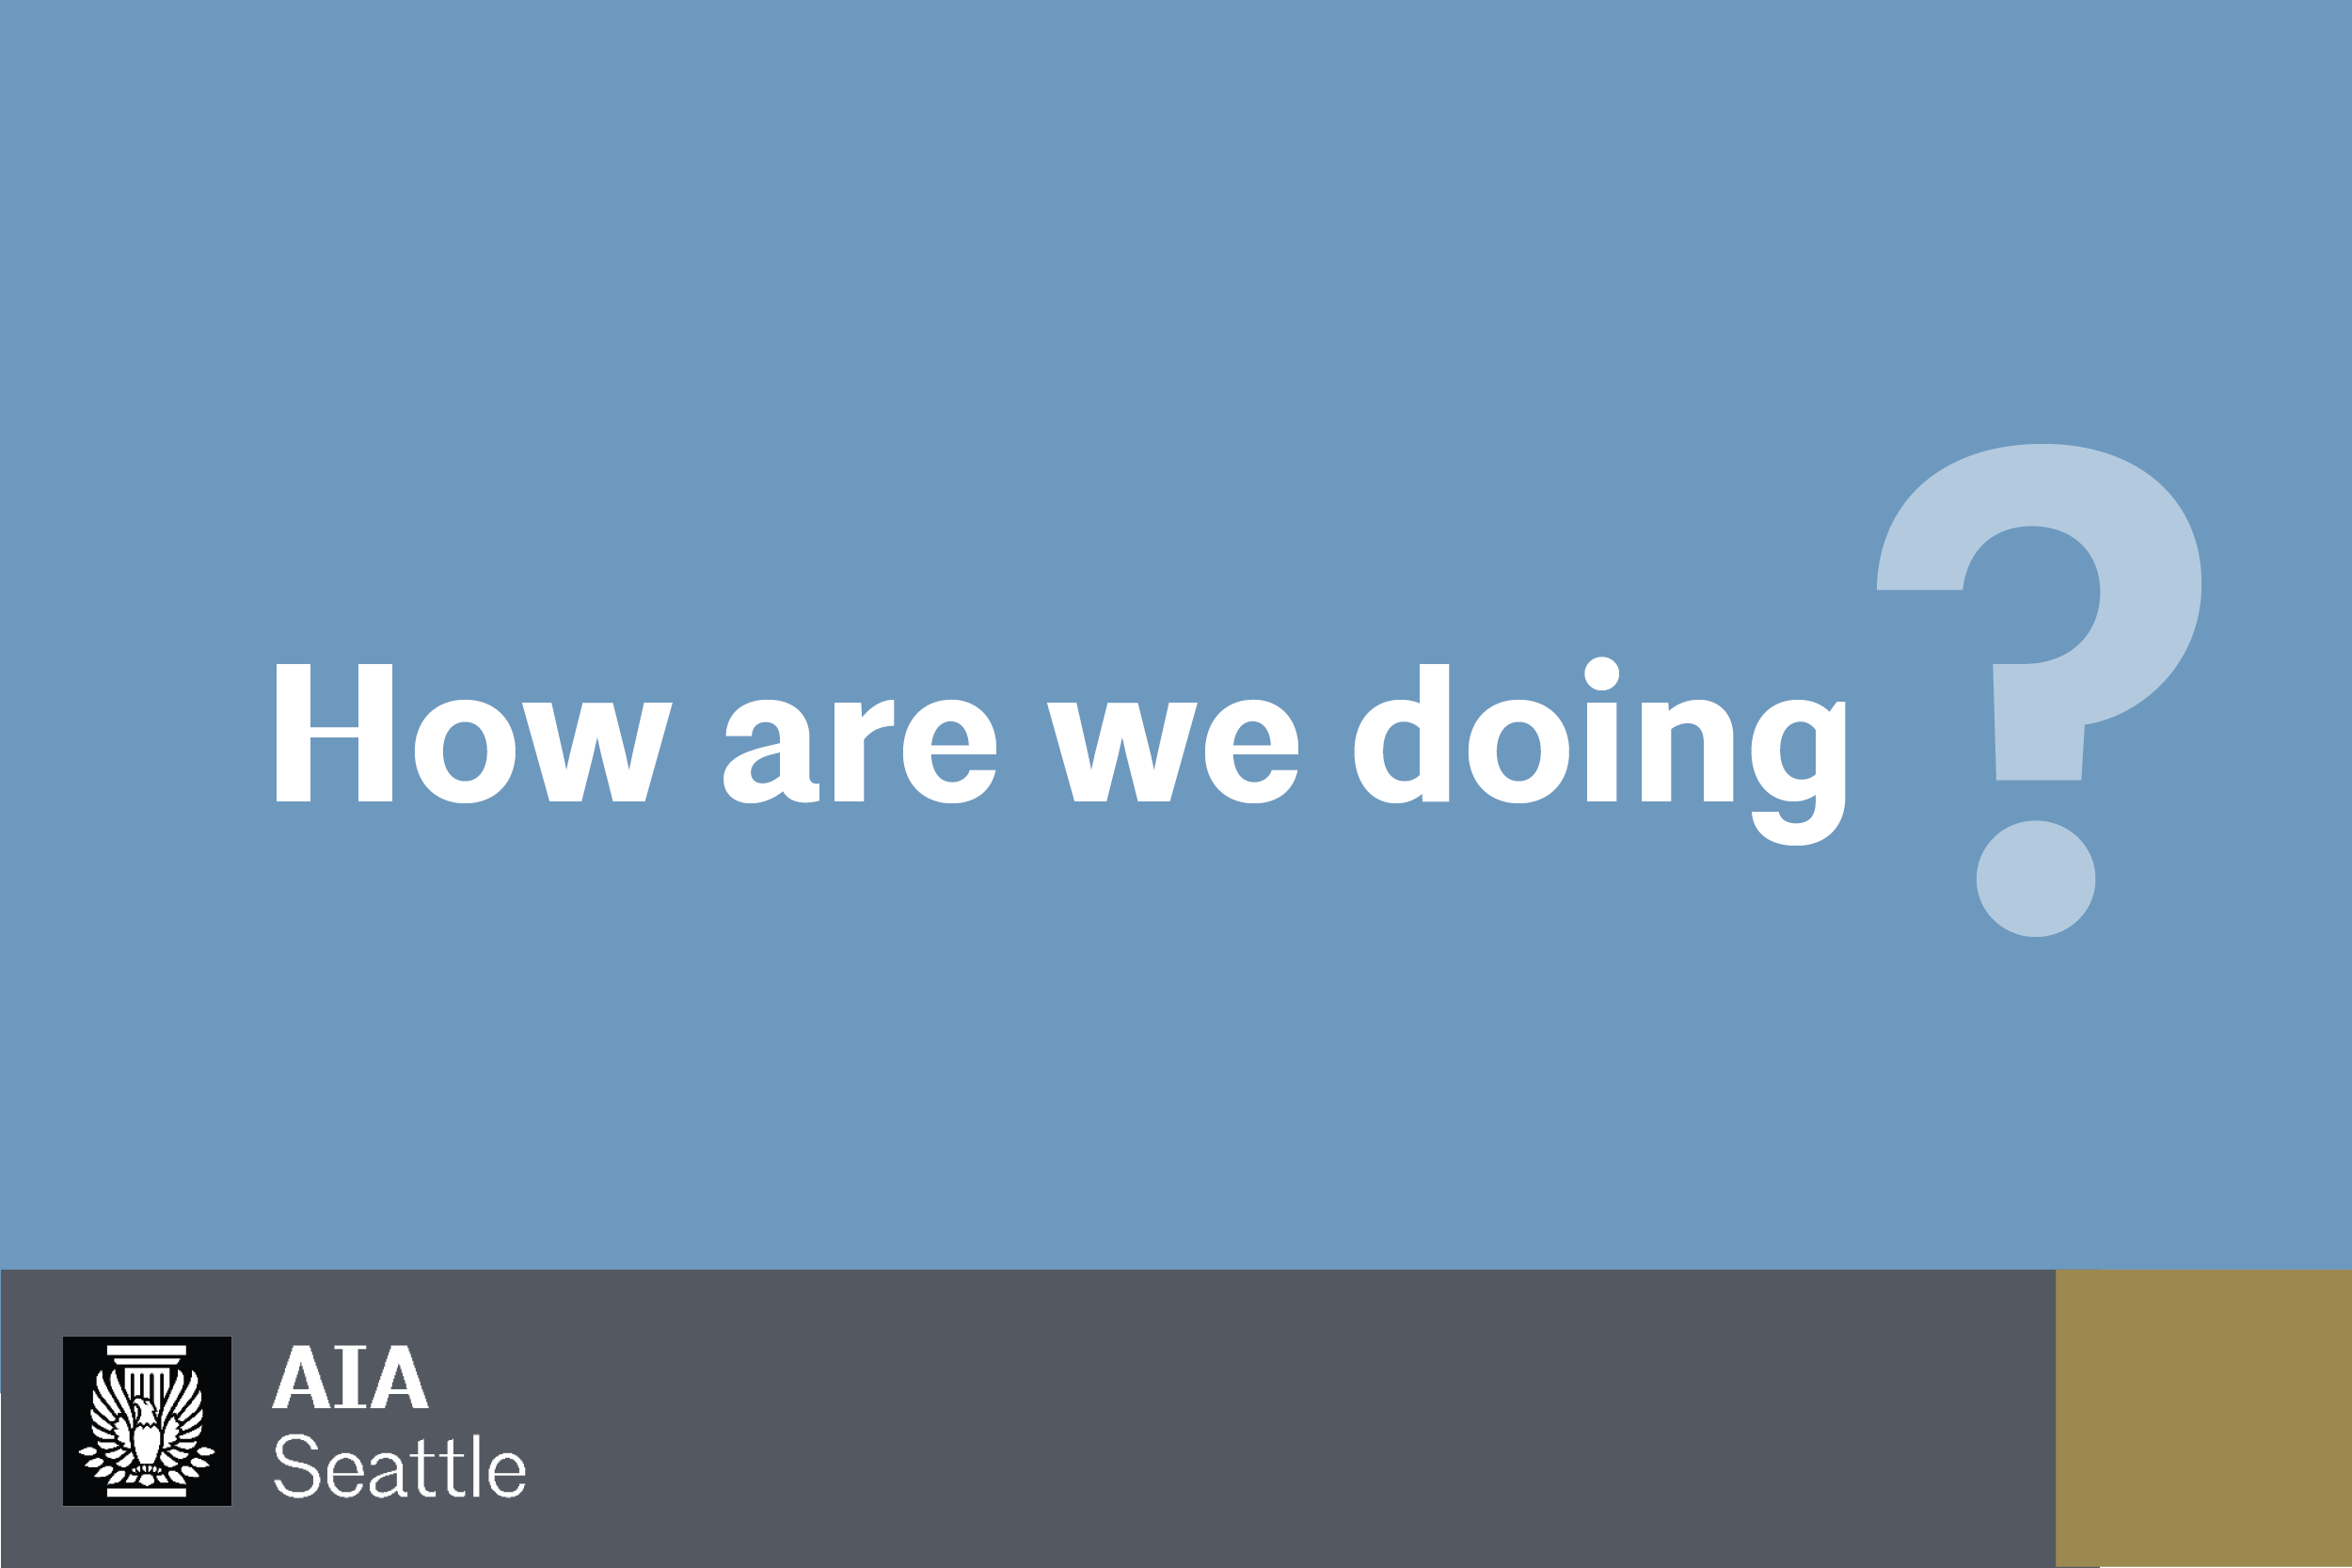 Your Voice Matters. AIA Seattle needs to hear what's important from our members and non-members in order to be a better resource for the design community and a leading advocate of well-designed, livable spaces. Your feedback matters!